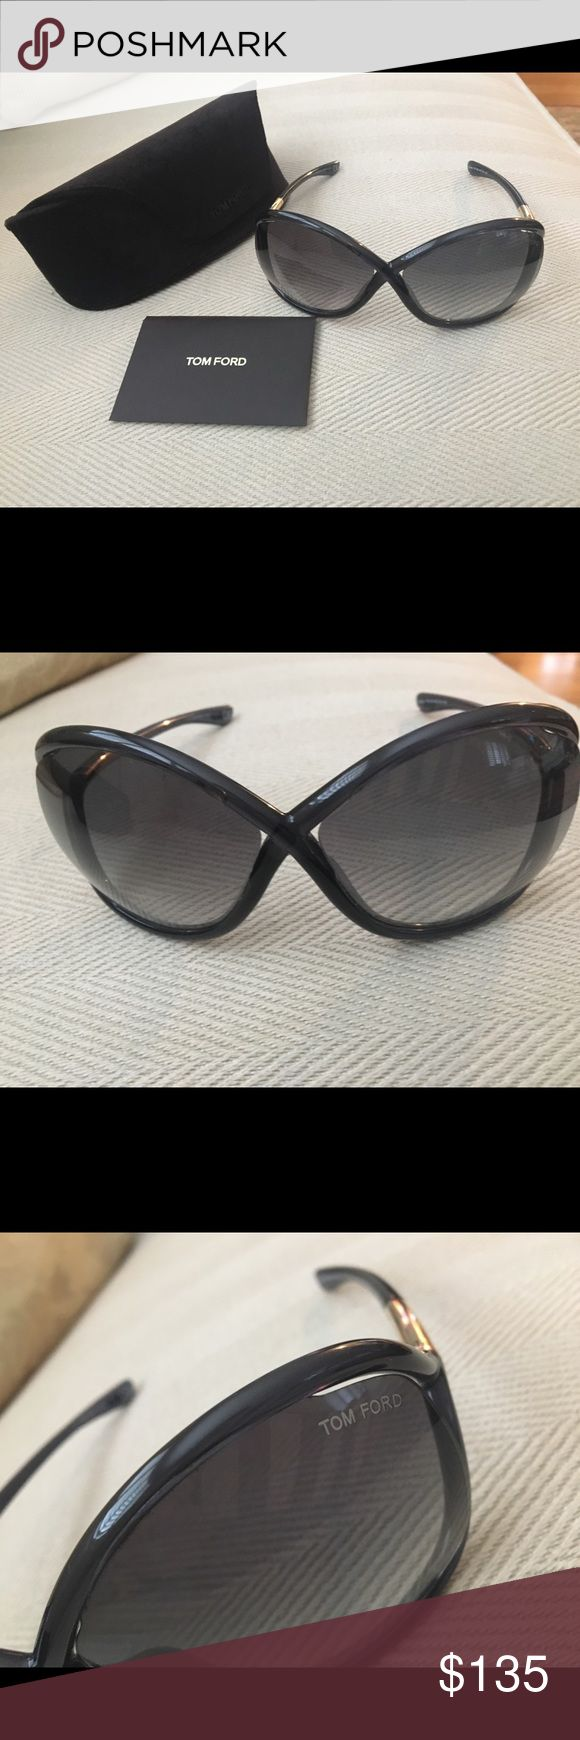 Tom Ford Black Whitney Sunglasses Tom Ford Whitney Sunglasses in Black. 64mm lens width; 14mm bridge width; 110mm temple length. 100% UV protection. Resin frame with black gradient lenses. Glasses, case and authenticity card. Unfortunately I no longer have box or cleaning cloth. No visible scratches or wear. Worn only a few times. Tom Ford Accessories Sunglasses